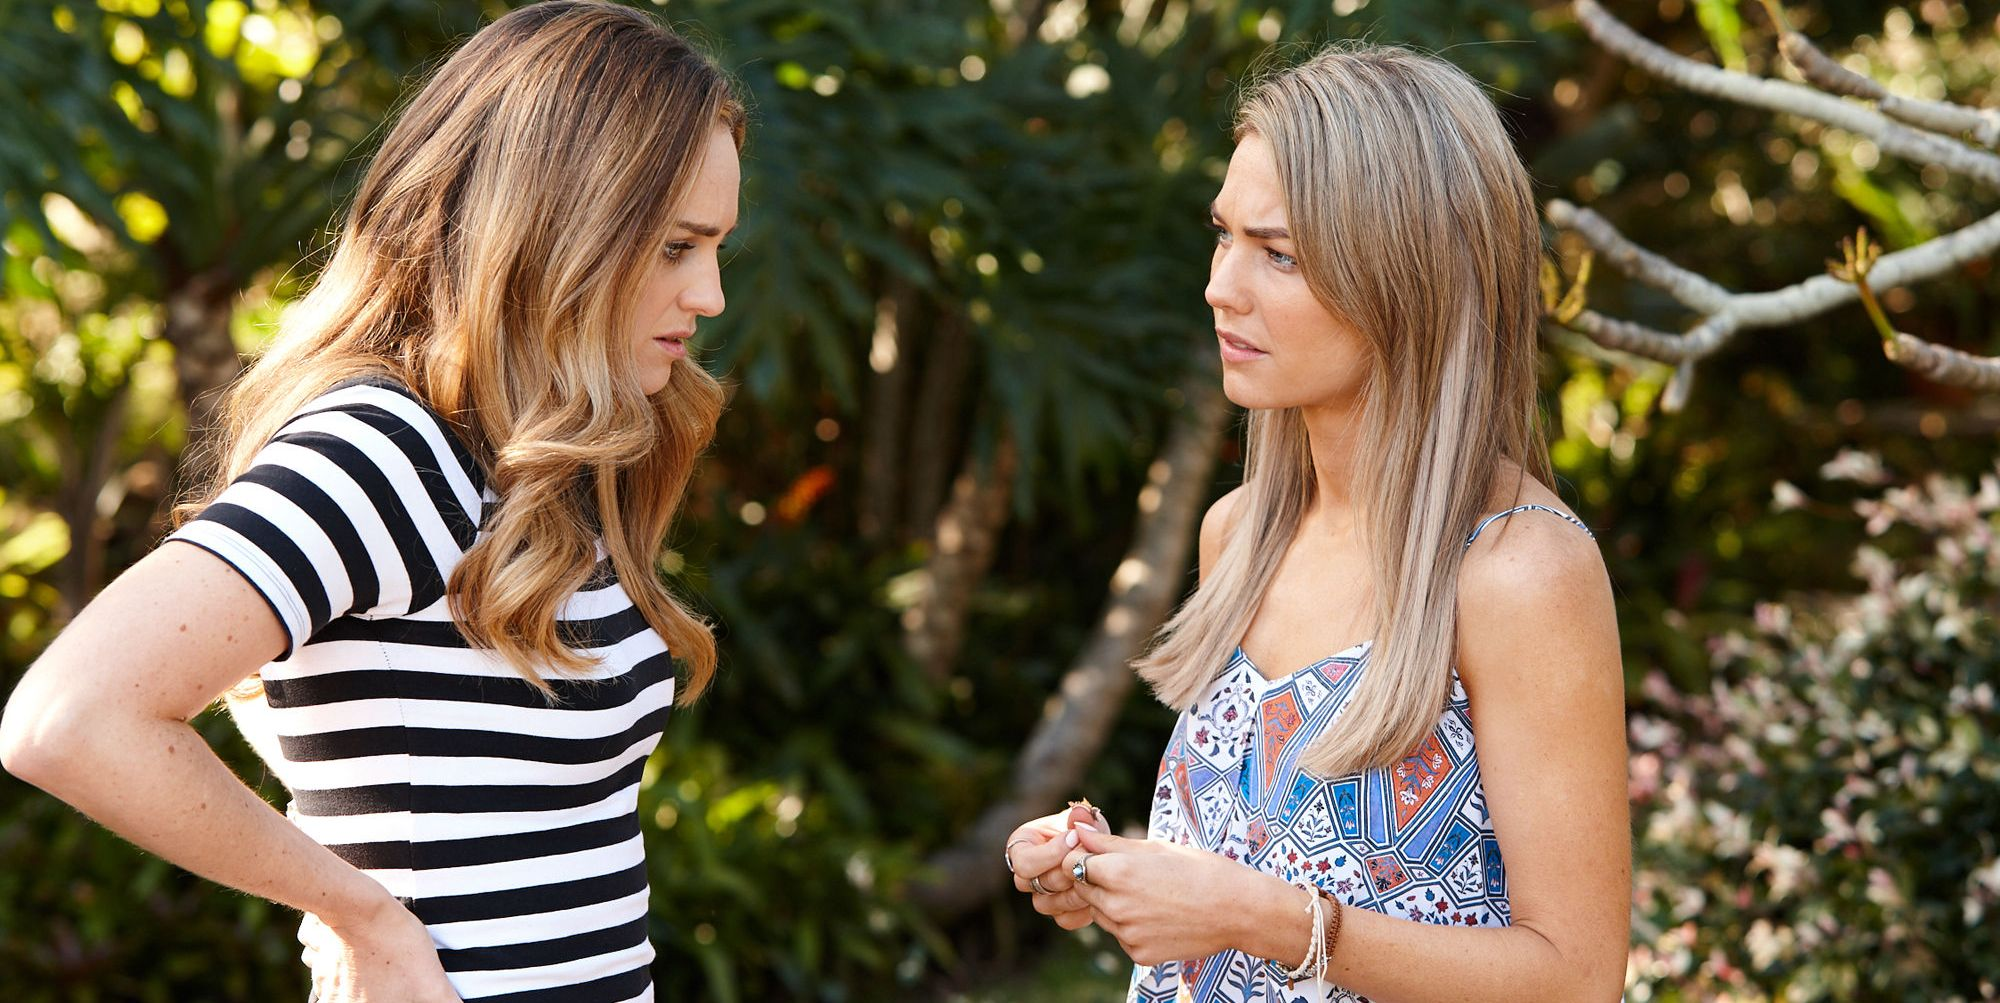 Tori Morgan corners Jasmine Delaney in Home and Away